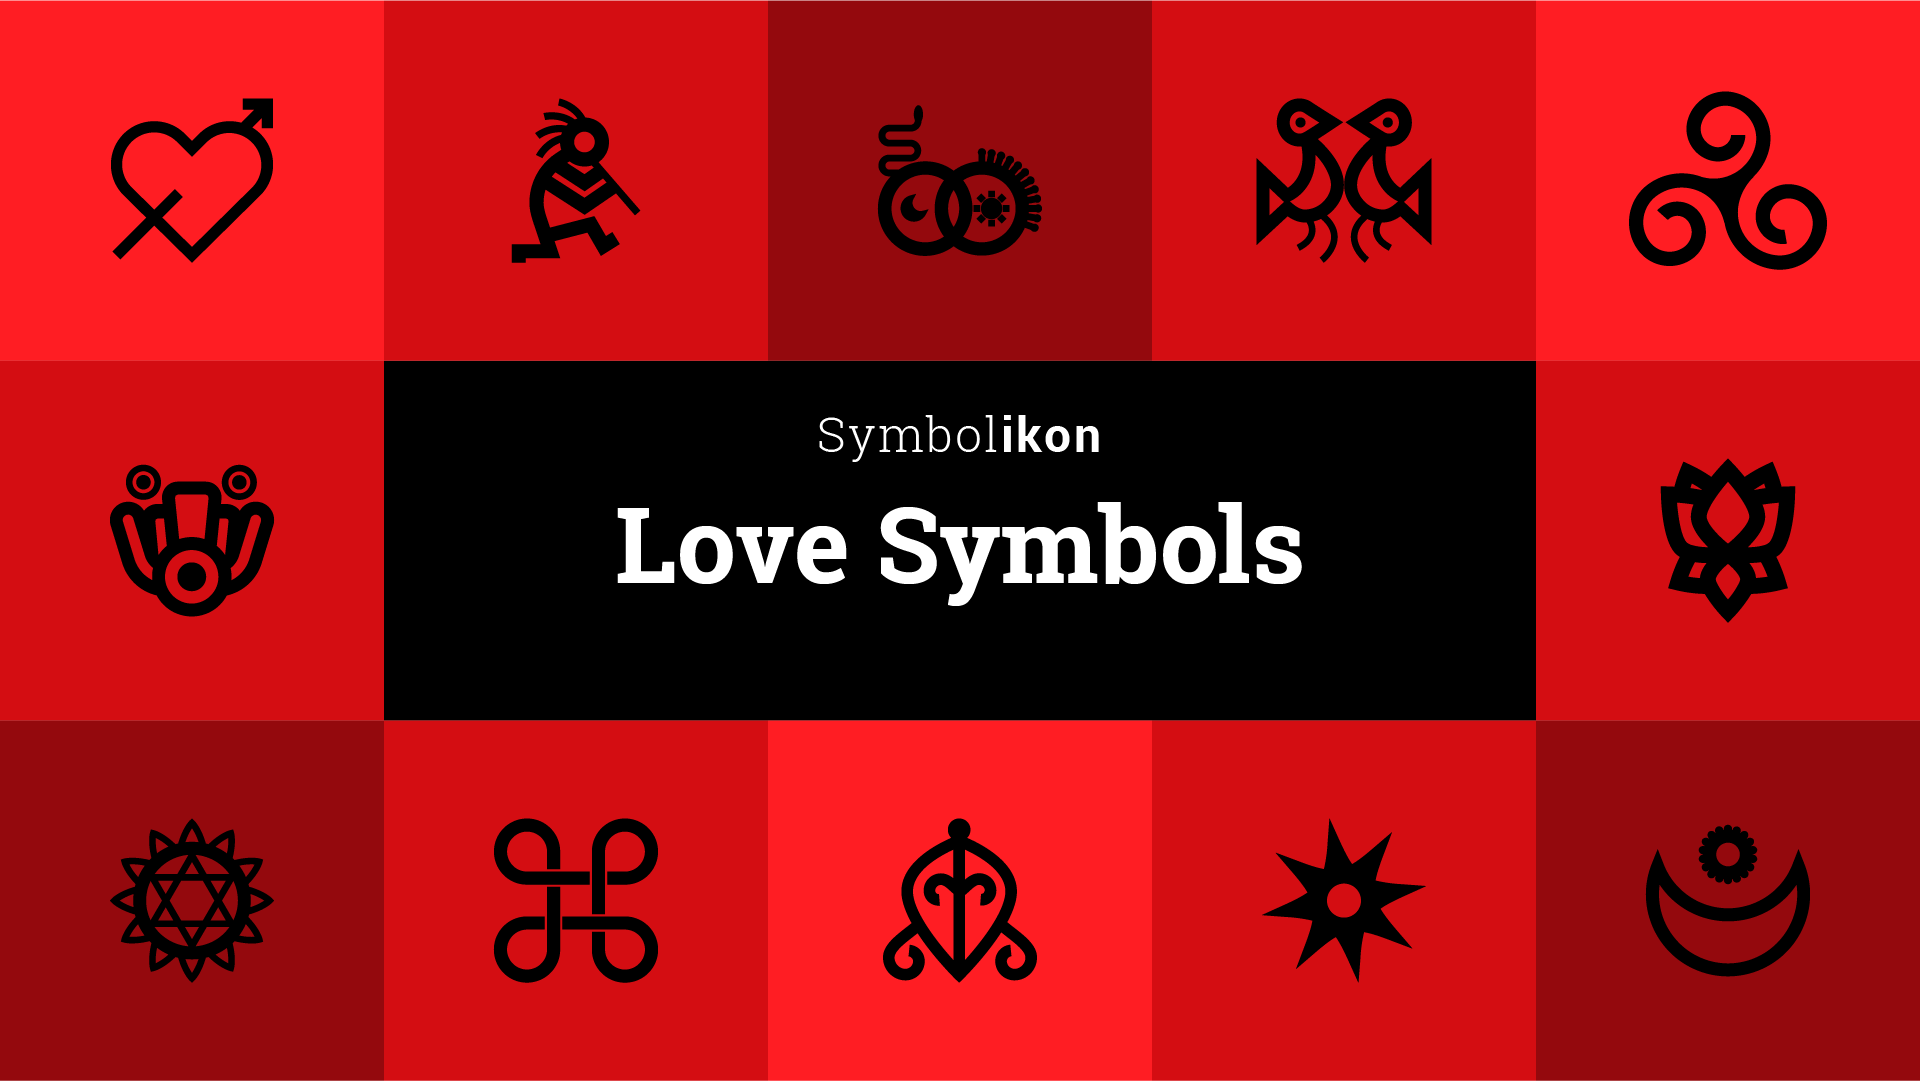 Love symbols with meaning